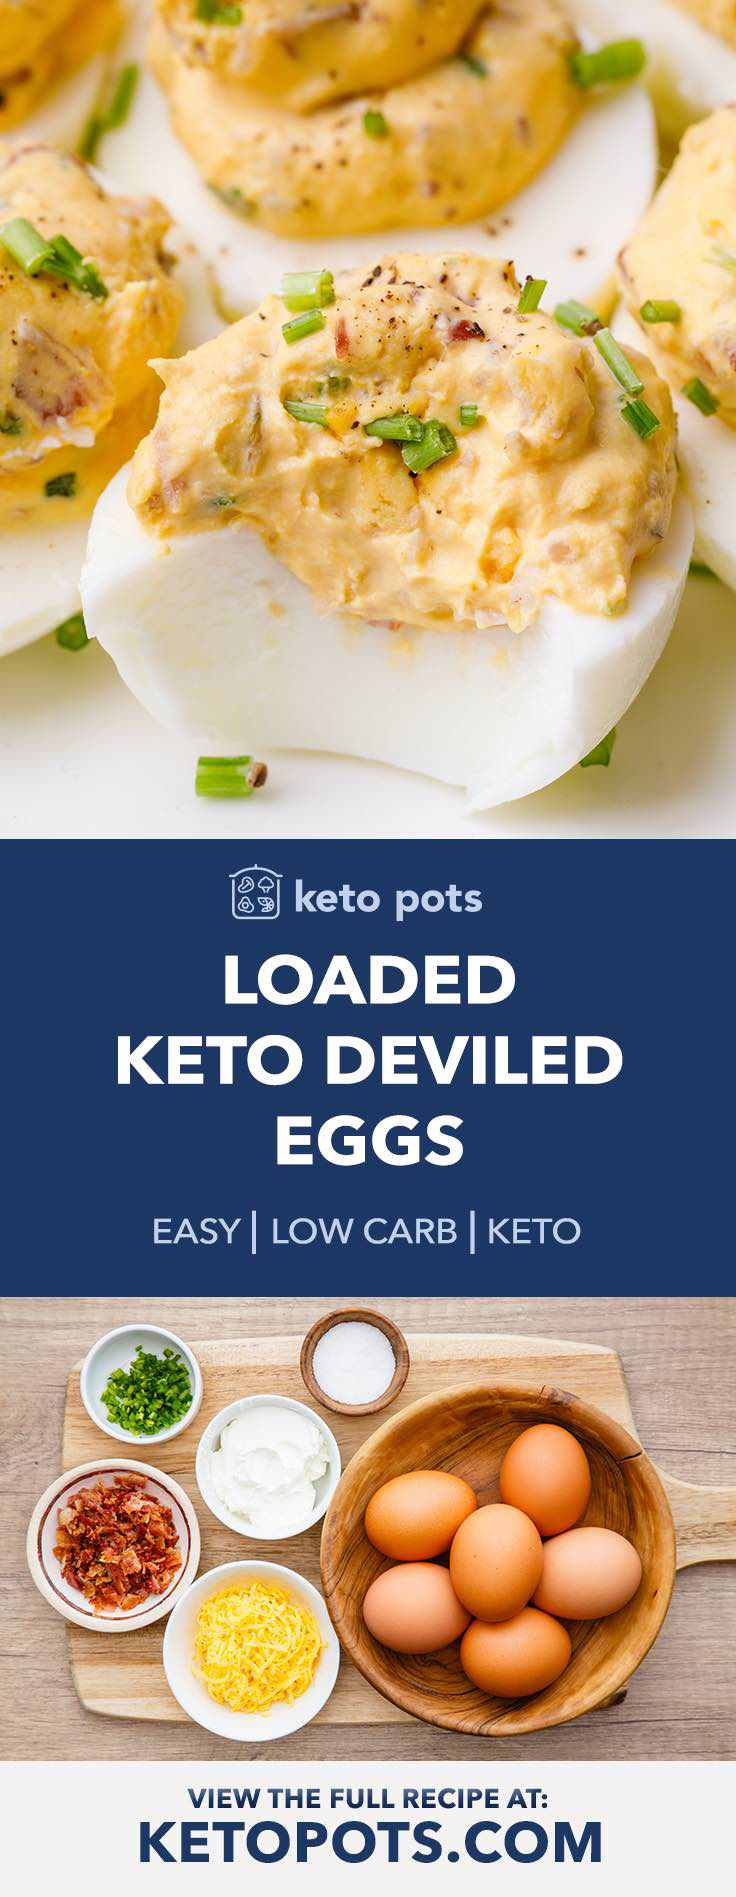 These loaded keto deviled eggs are incredible!